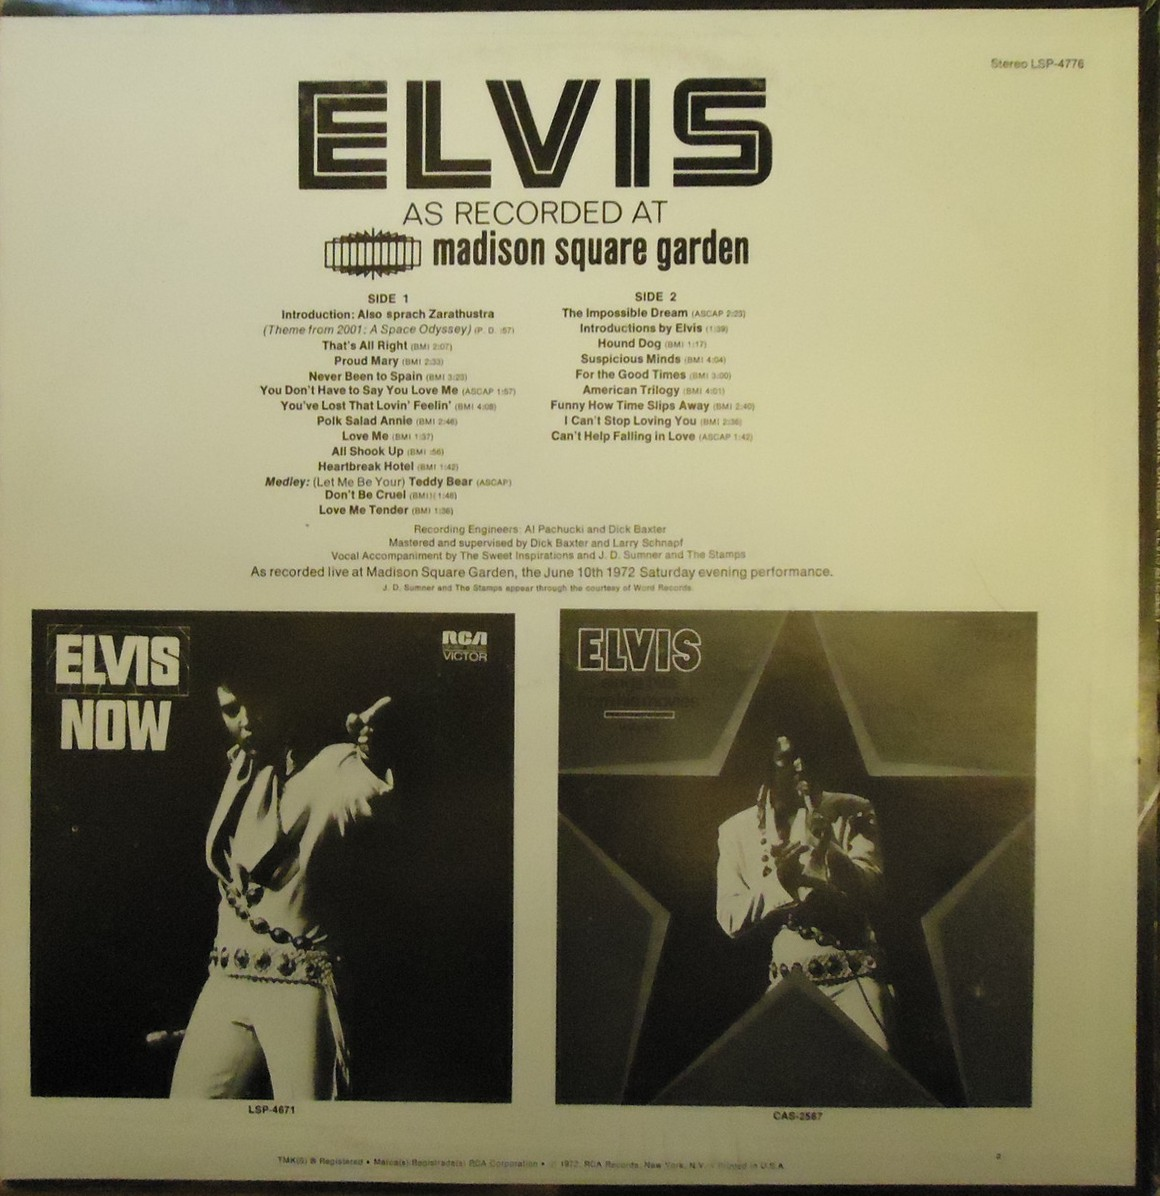 ELVIS AS RECORDED AT MADISON SQUARE GARDEN Lsp4776haxroa